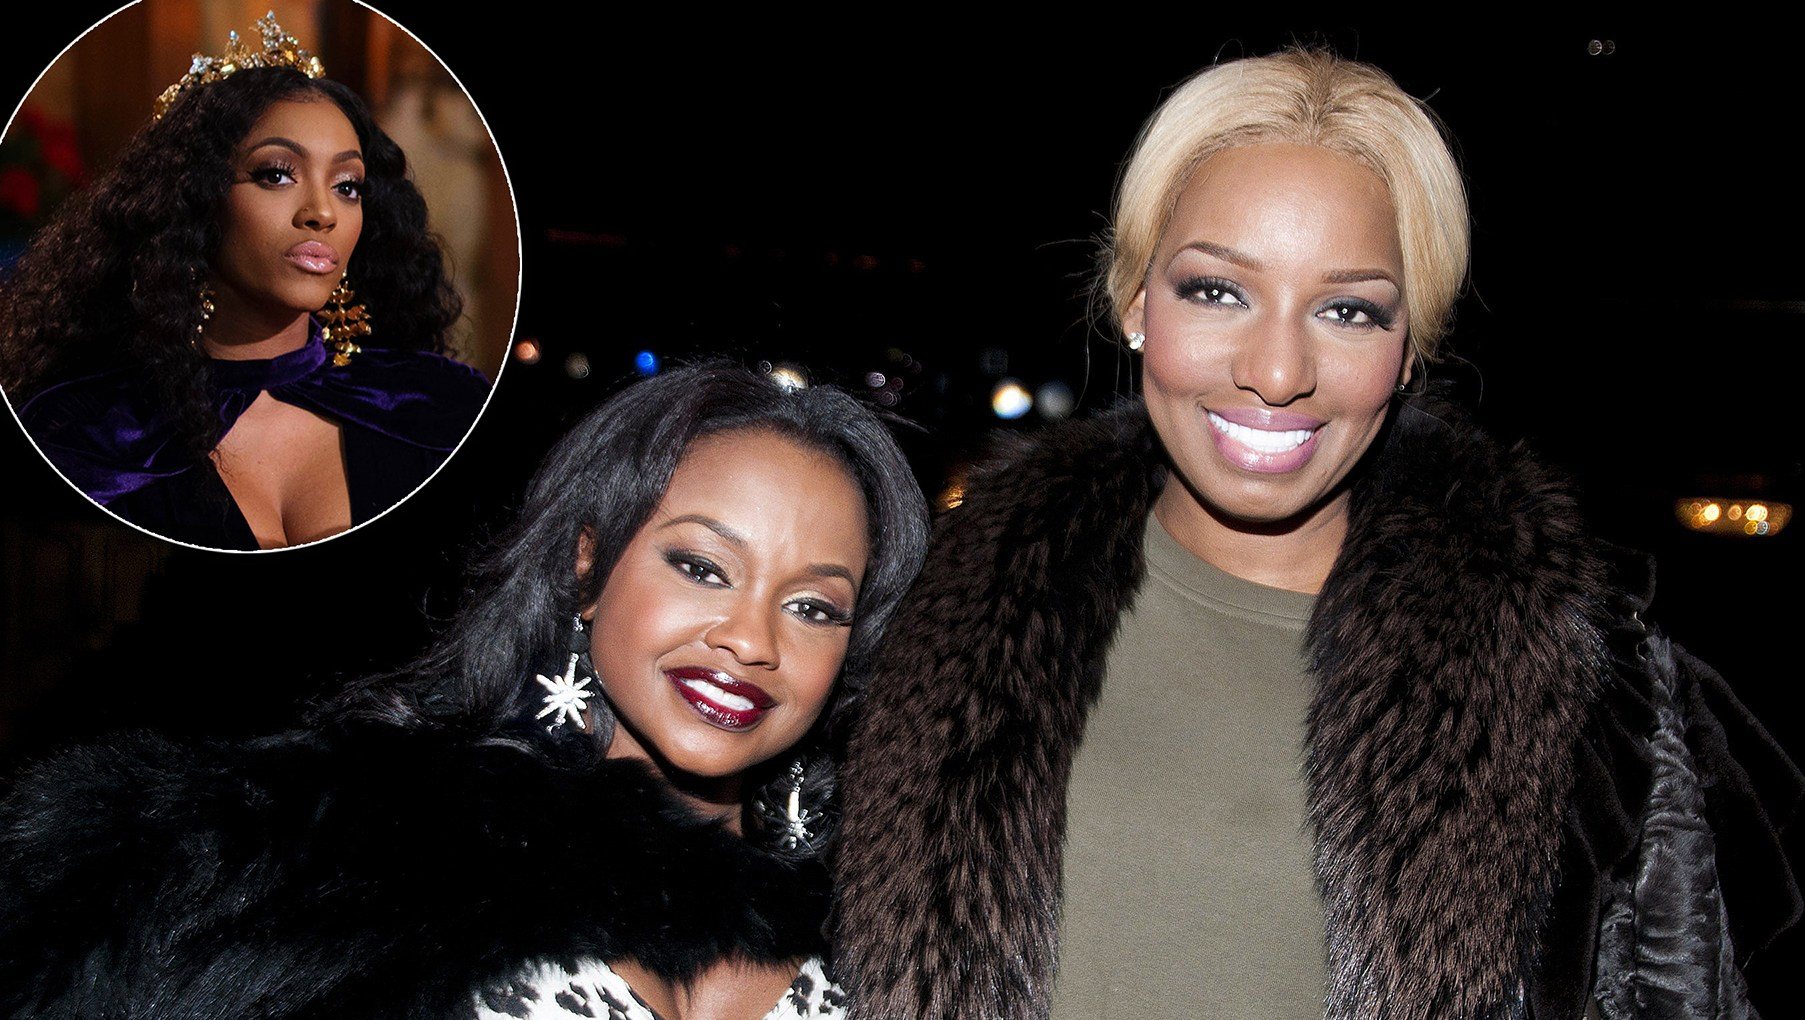 RHOA's NeNe Leakes Is 'Making Amends' With Phaedra Parks, But Icing Out Porsha Williams